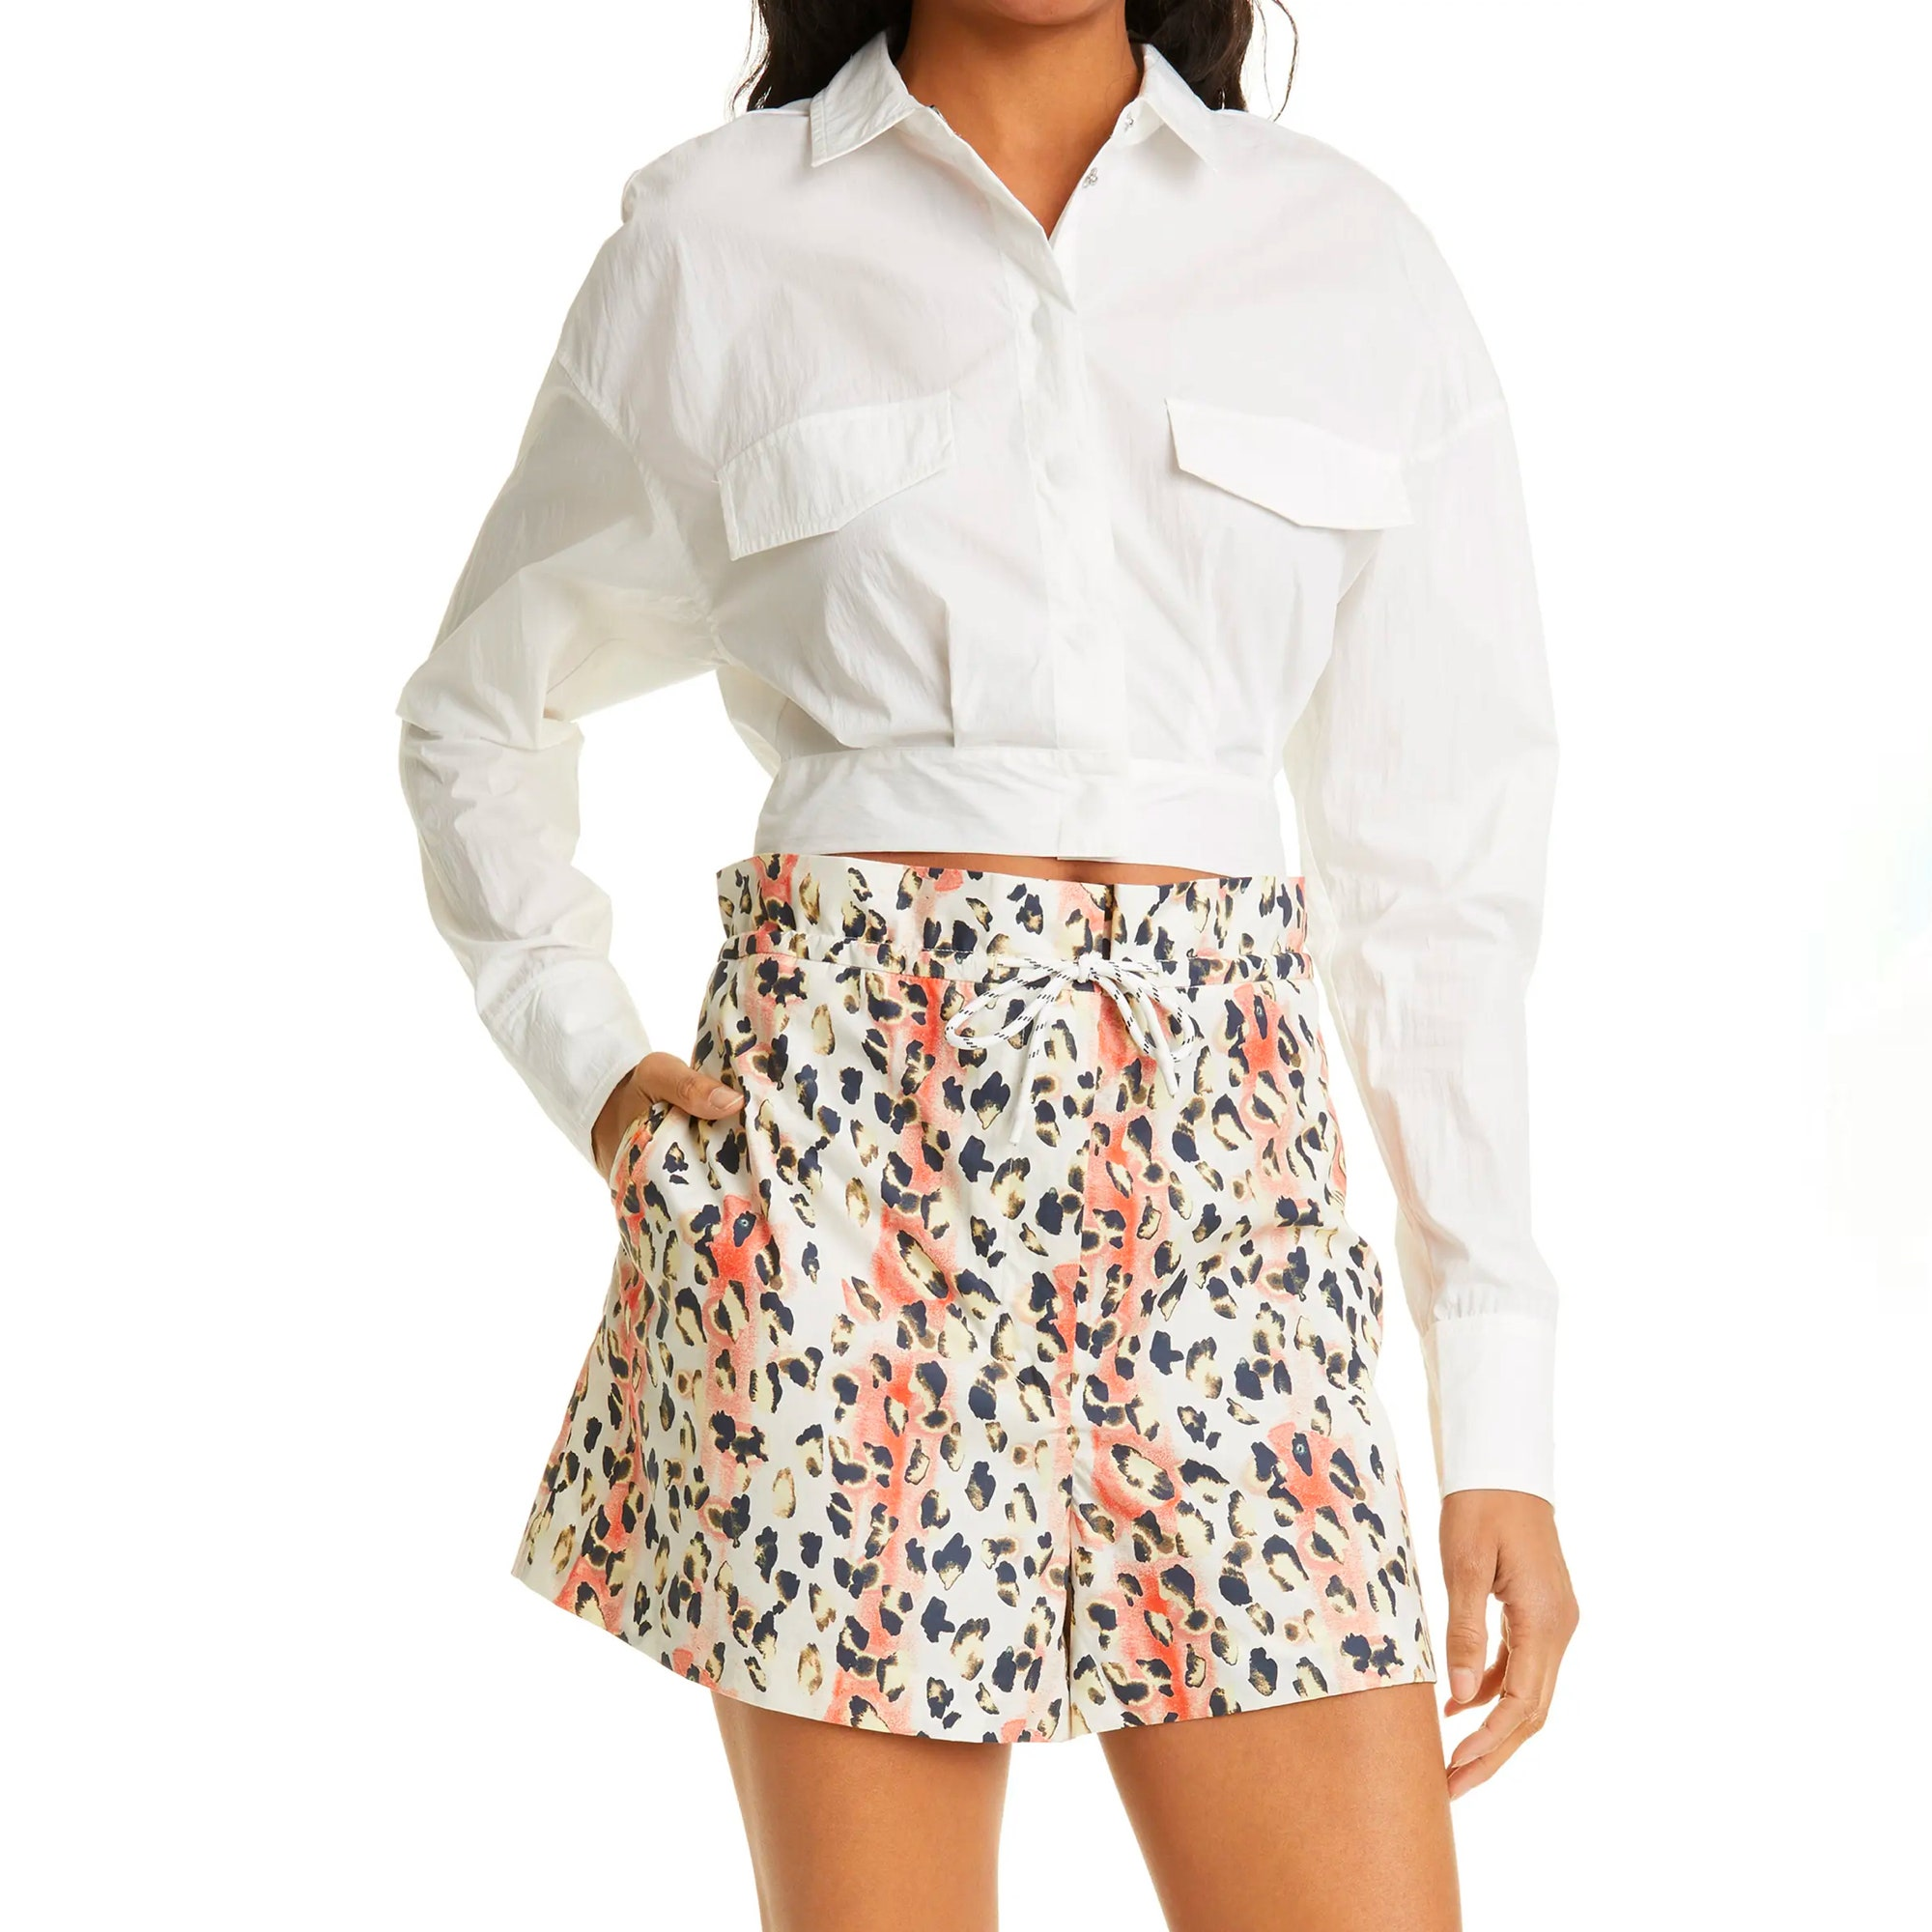 model wearing white button down and mini skirt